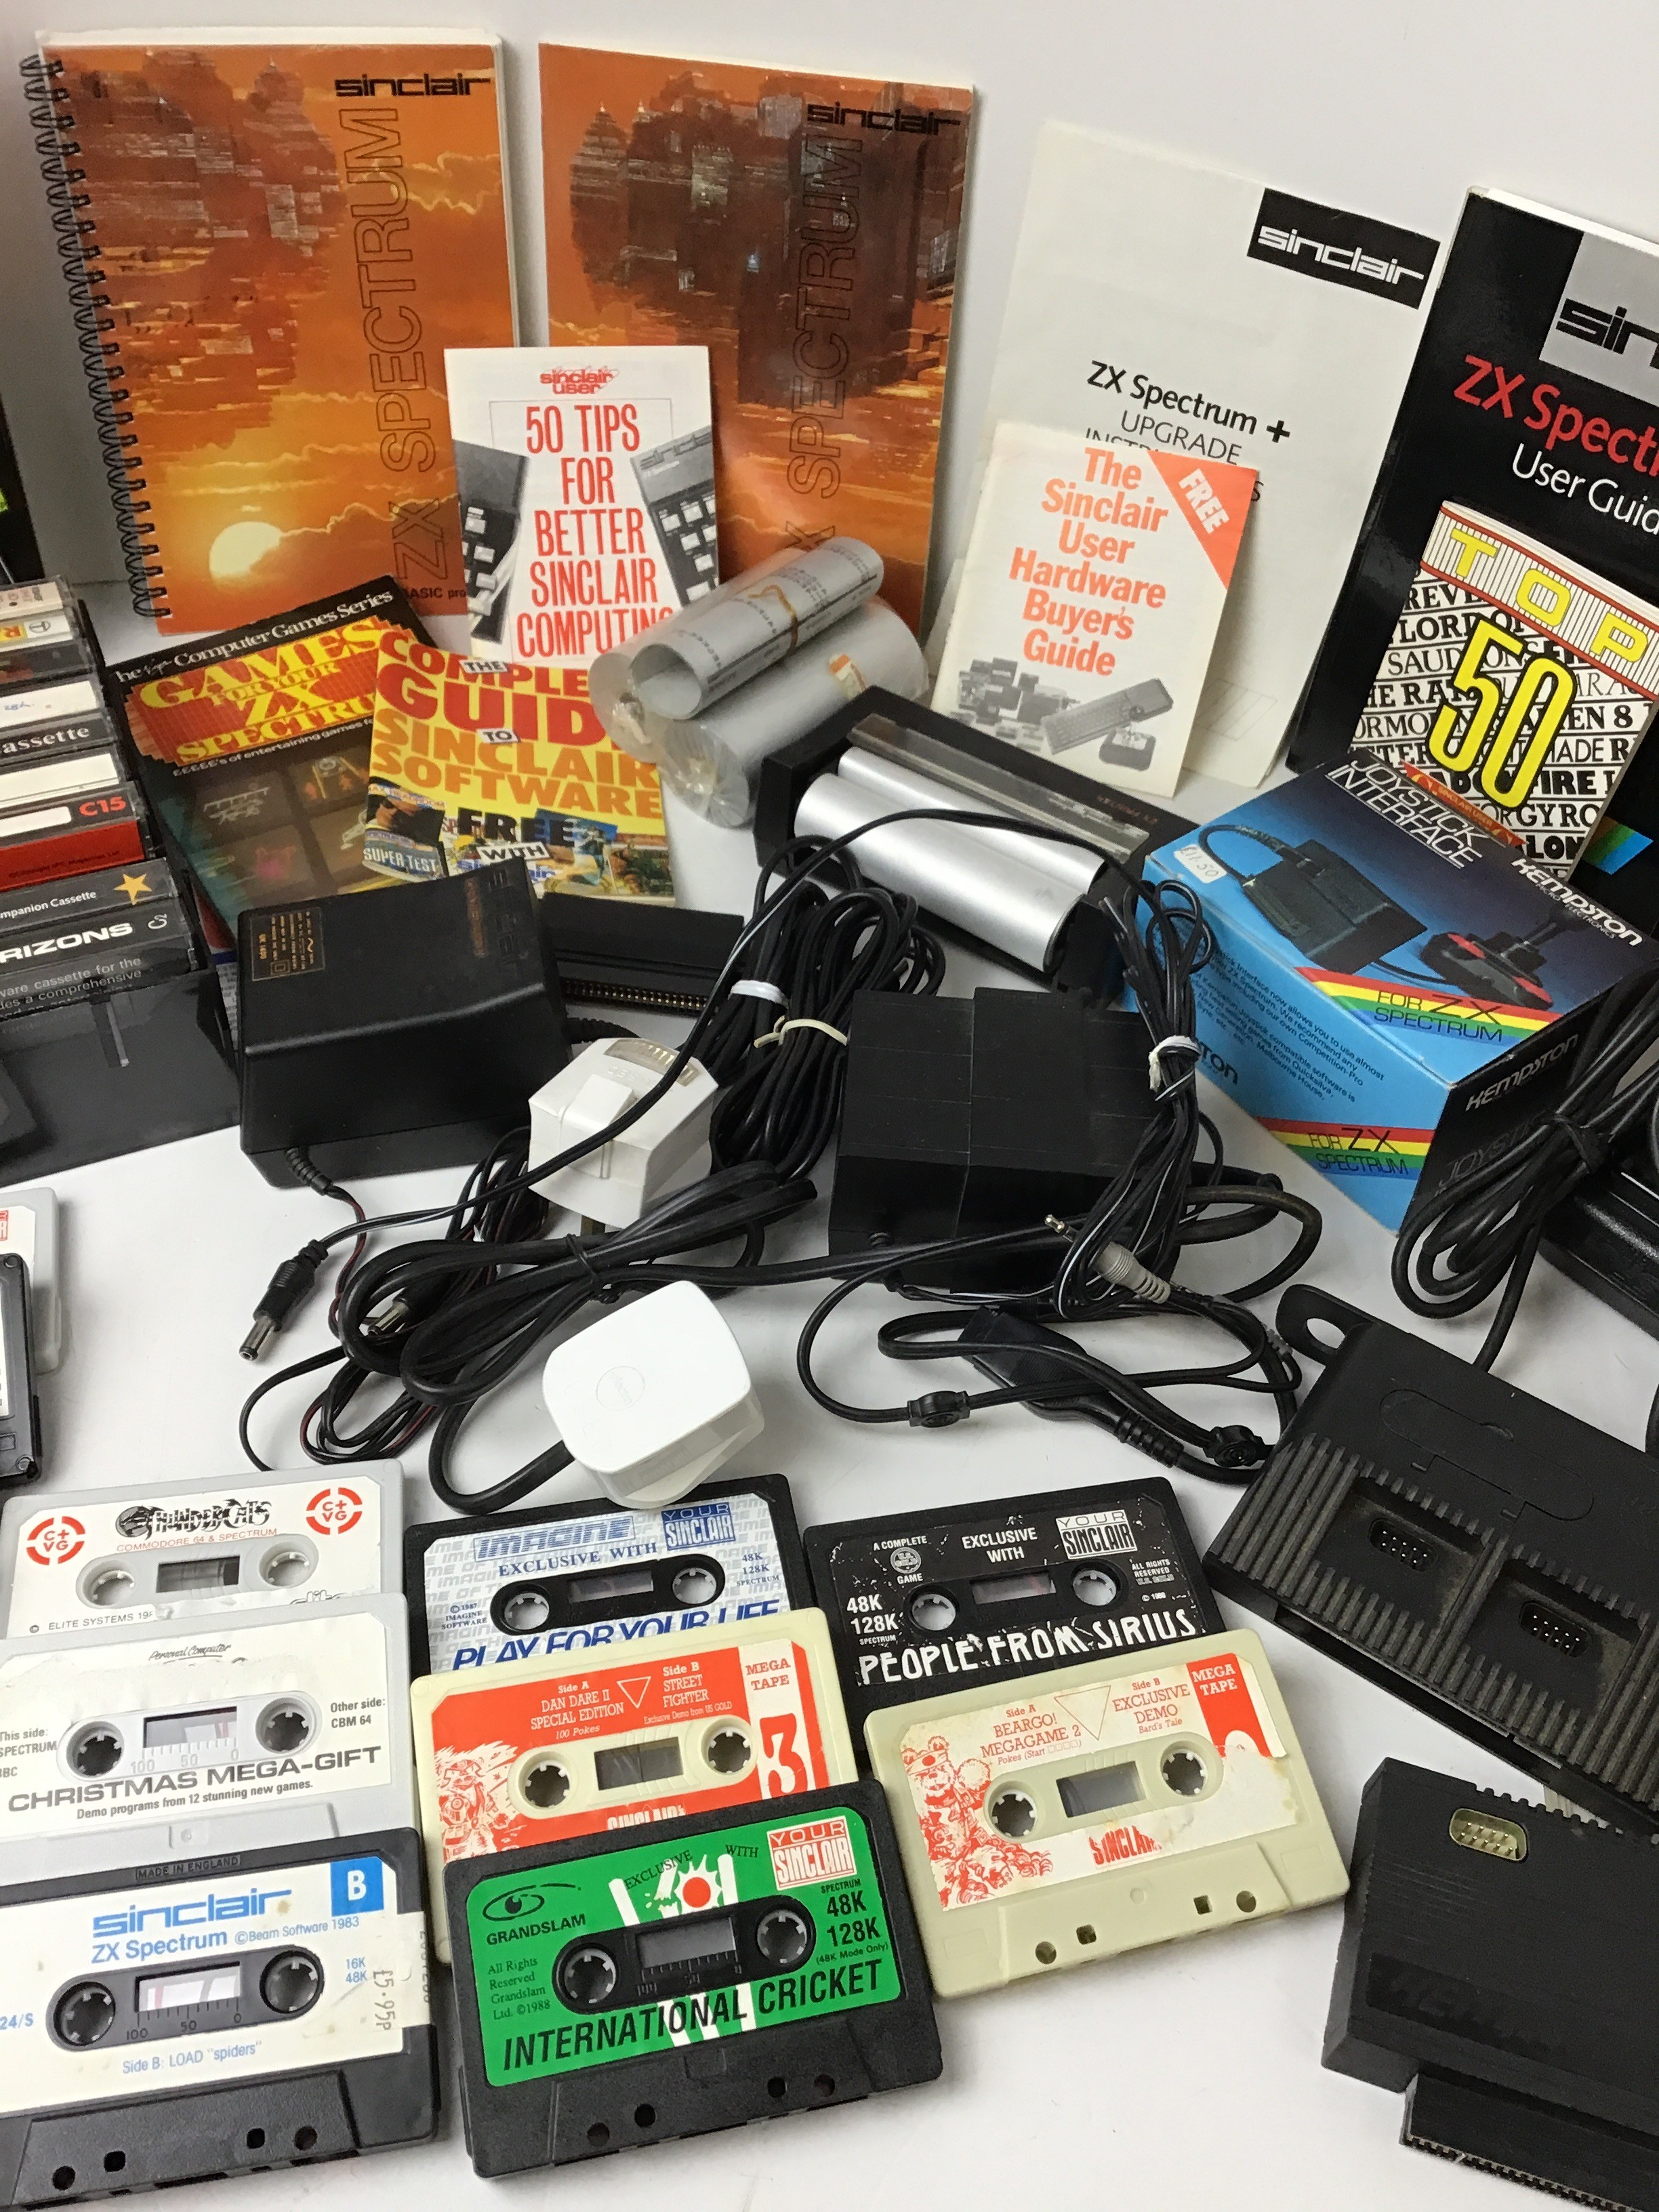 Collection of ZX Spectrum Accessories - Games, Printer, Joysticks and User Manuals etc - Image 3 of 4